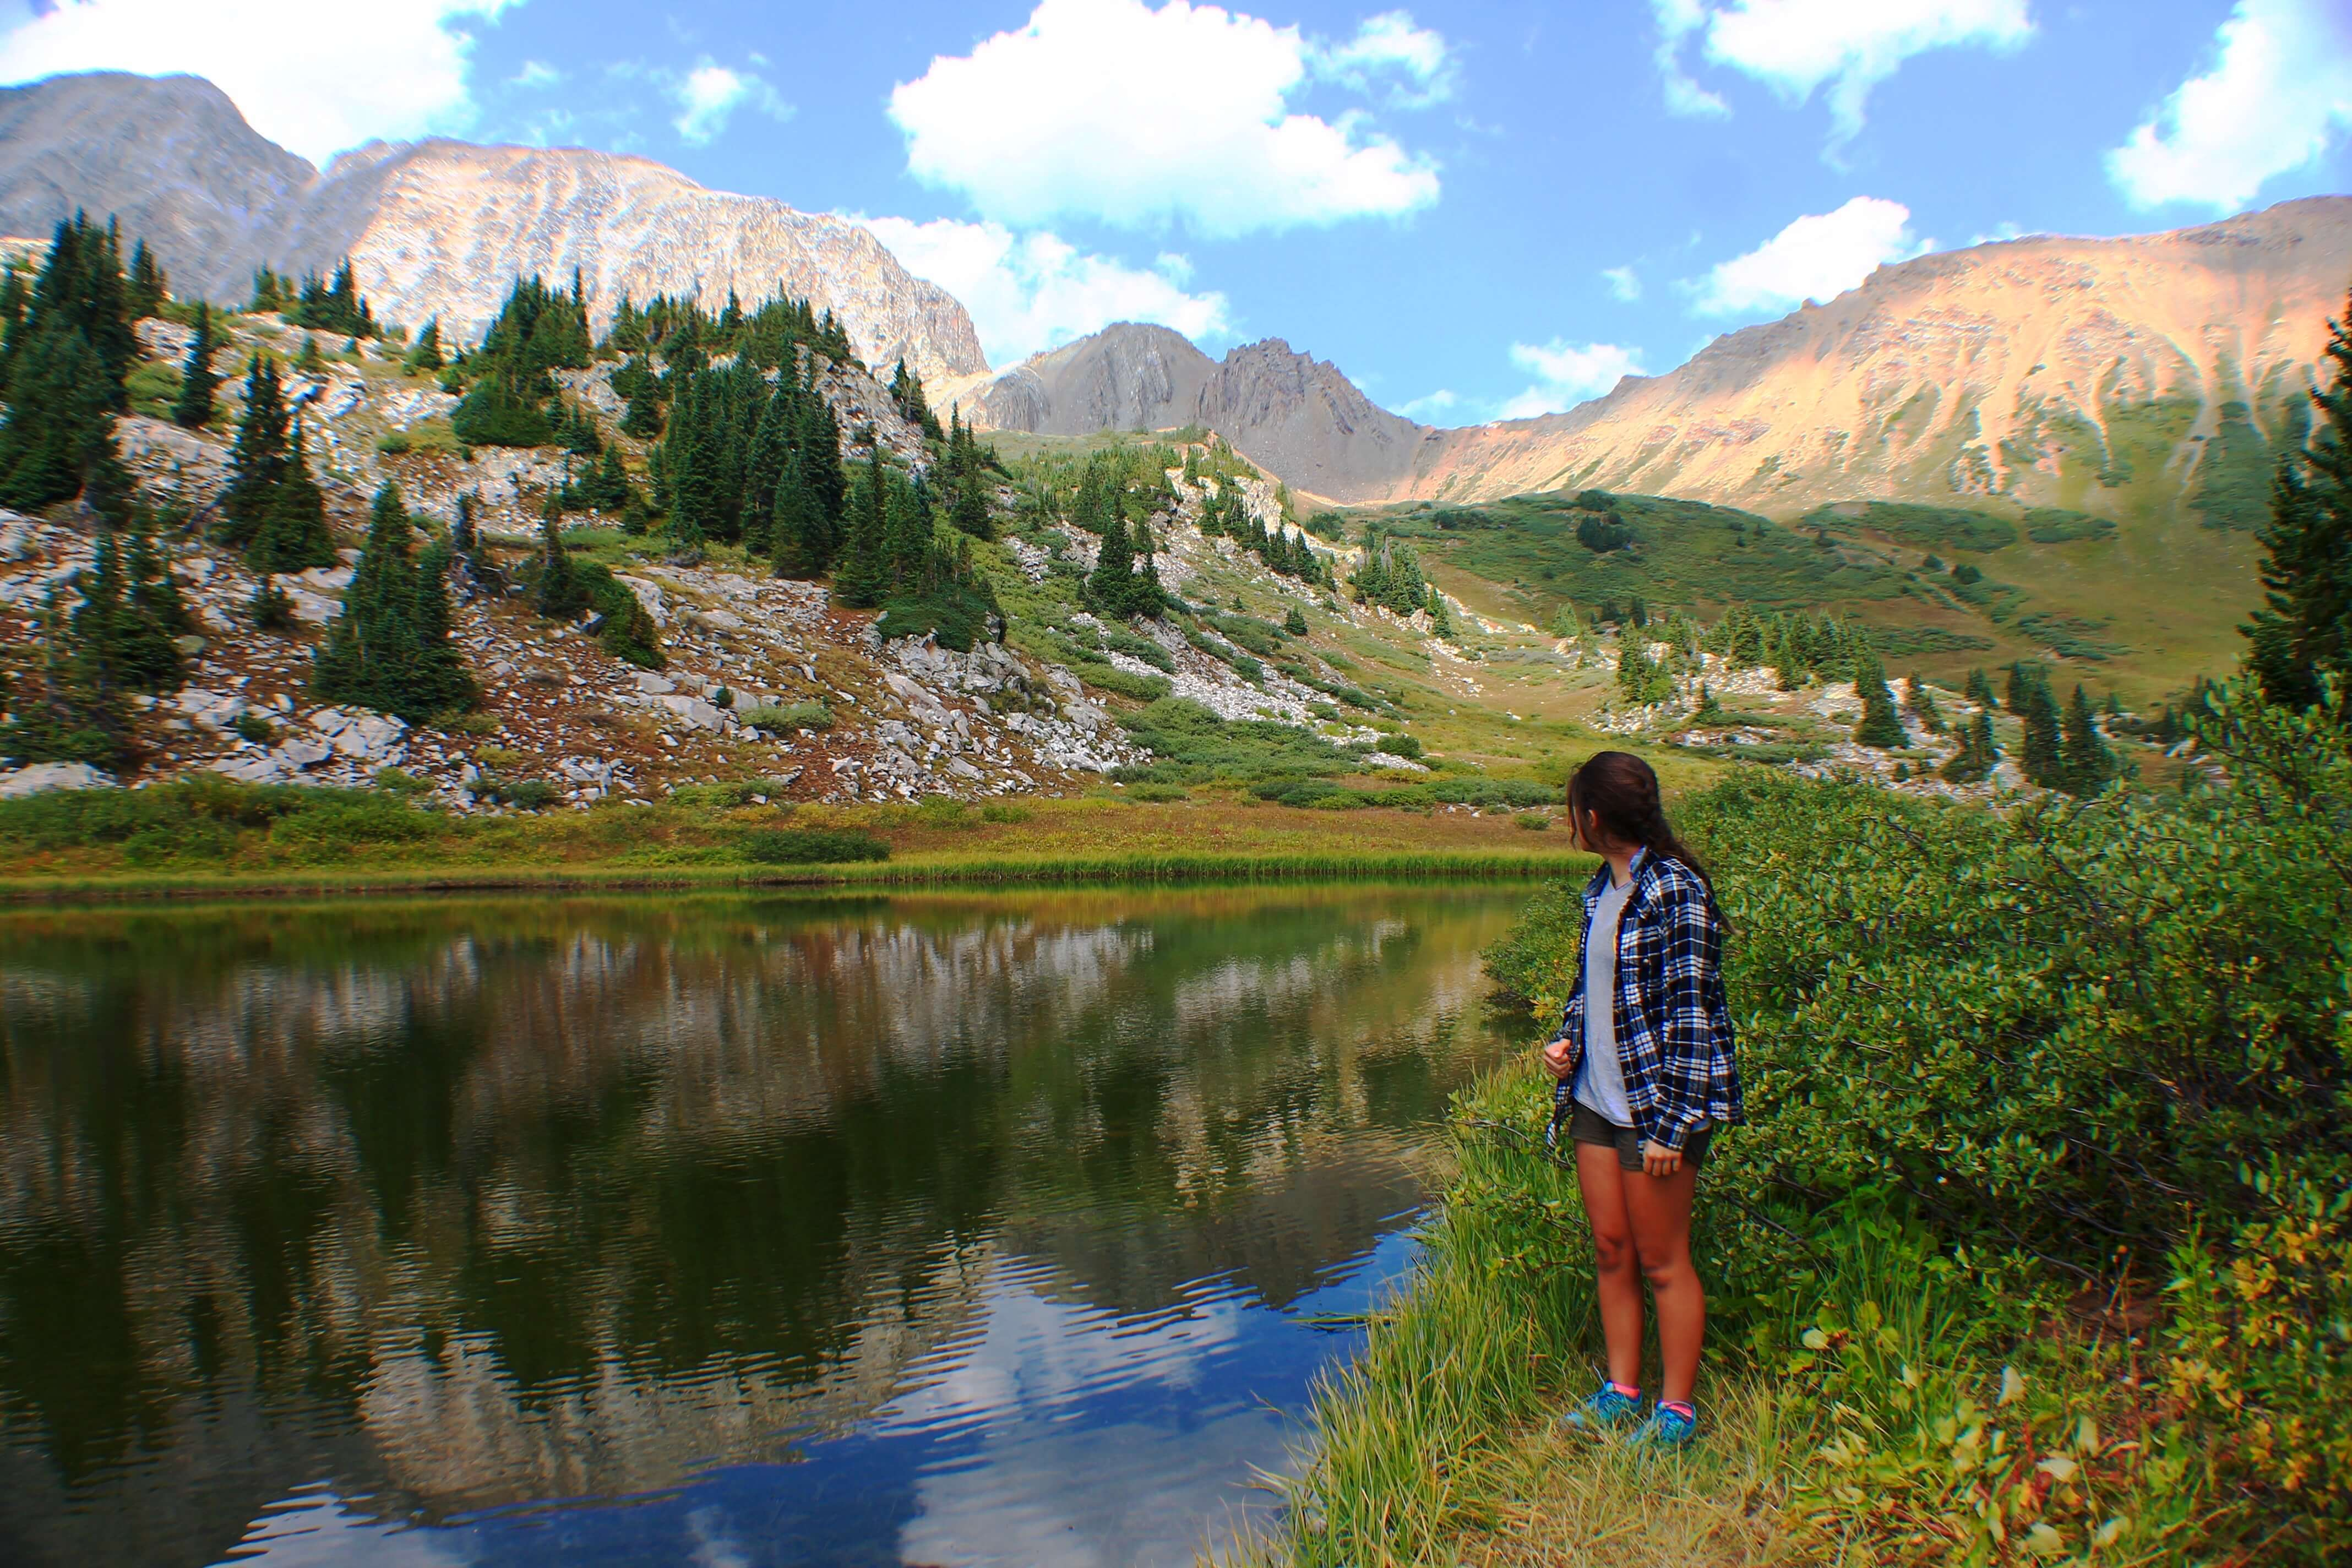 Little lake in Lead King Basin, Backpacking the Maroon Bells Four Pass Loop